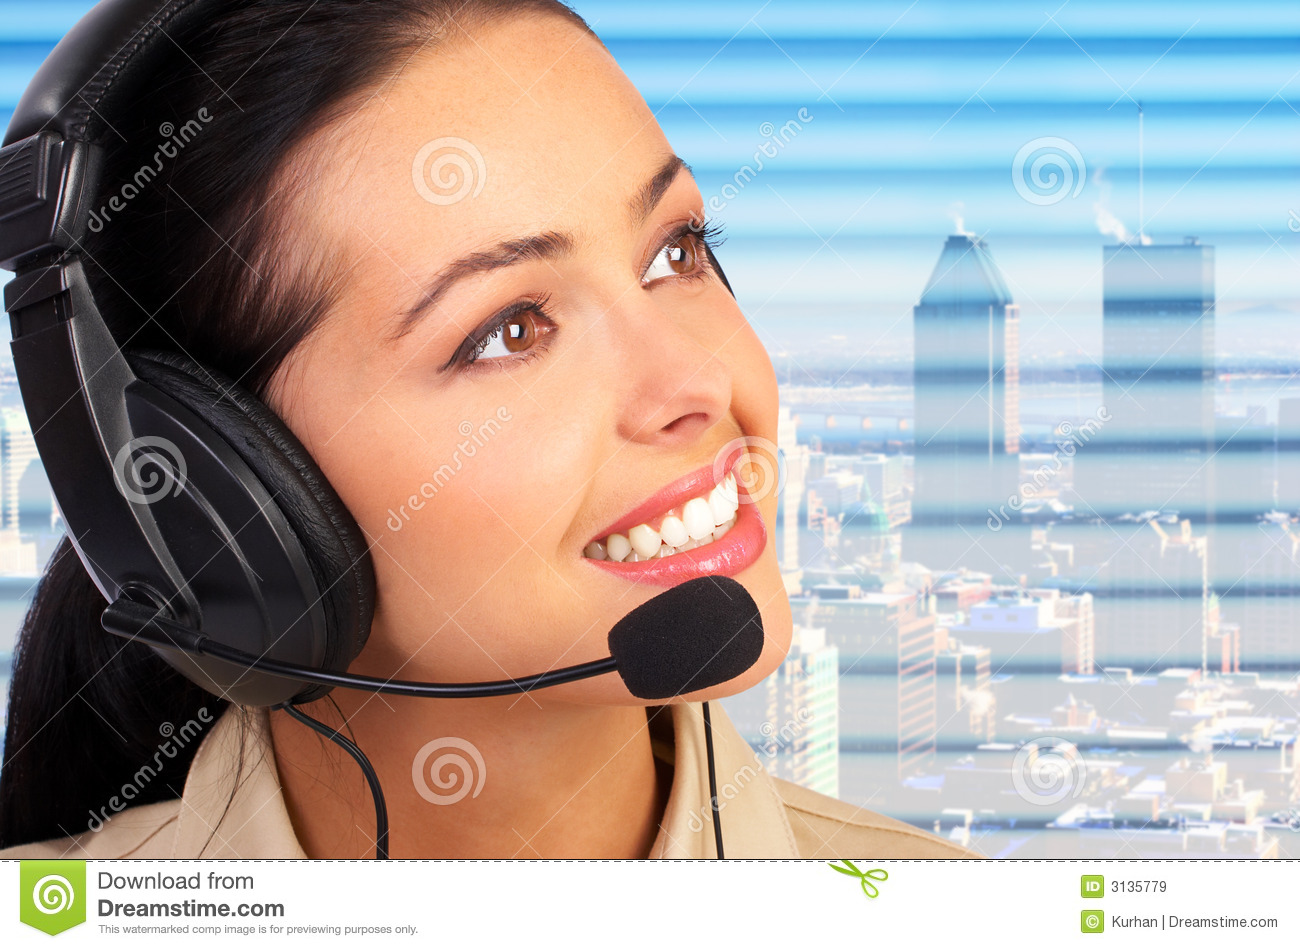 Call Center Operator Stock Photos, Images, & Pictures - 24,948 Images